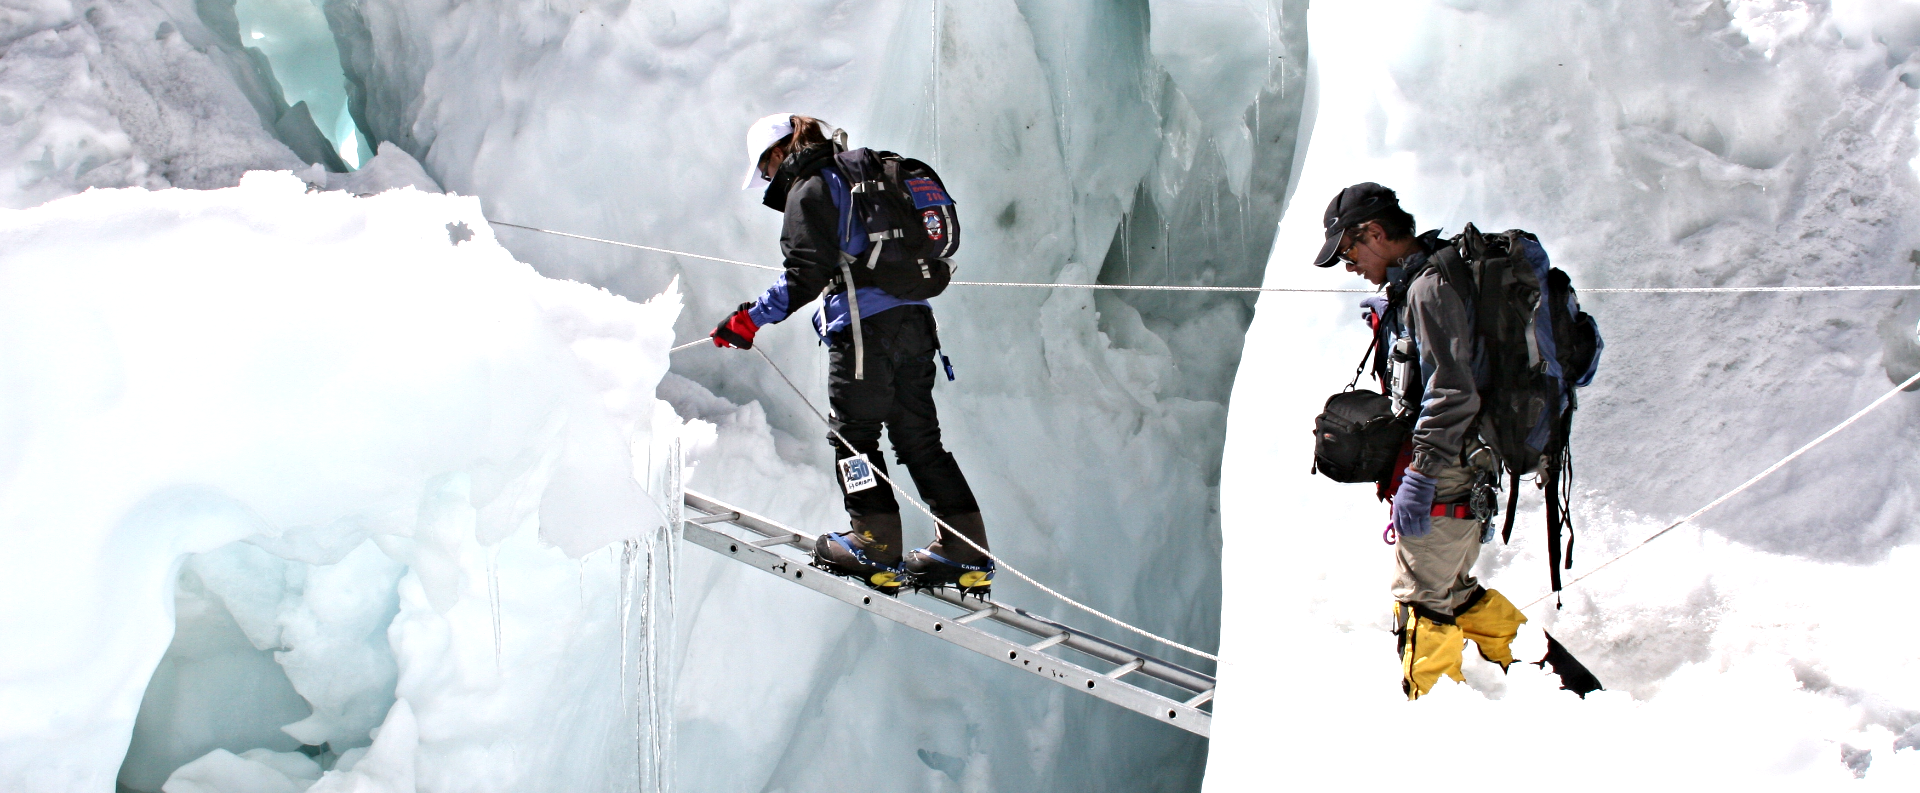 Crossing the Khumbu Ice Fall